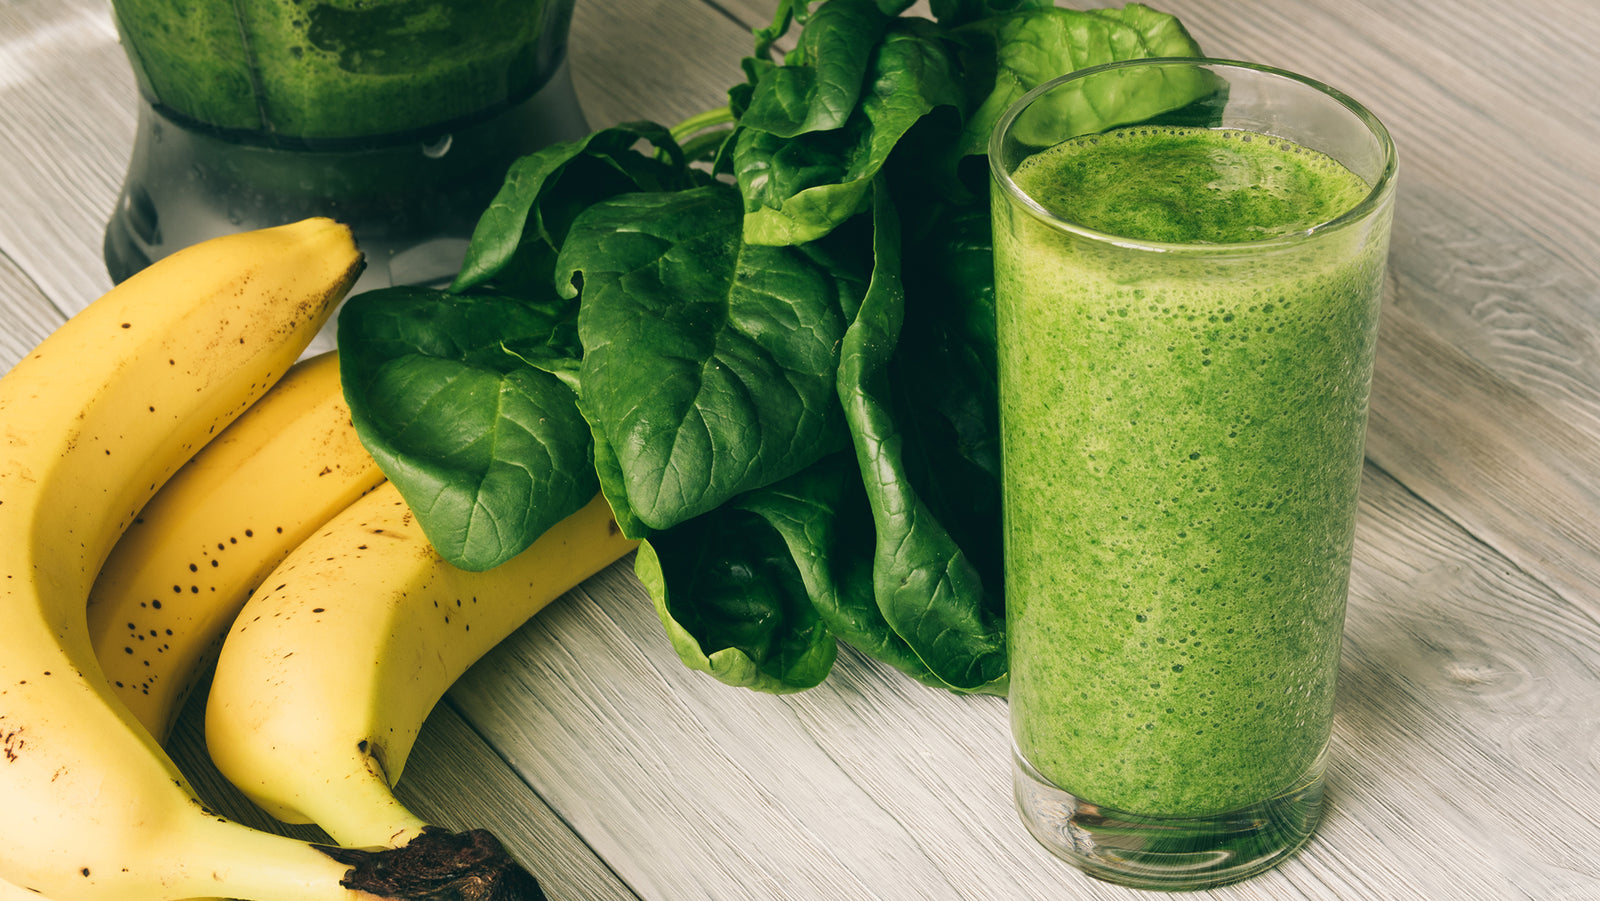 How To Reduce Sugar In Your Smoothie